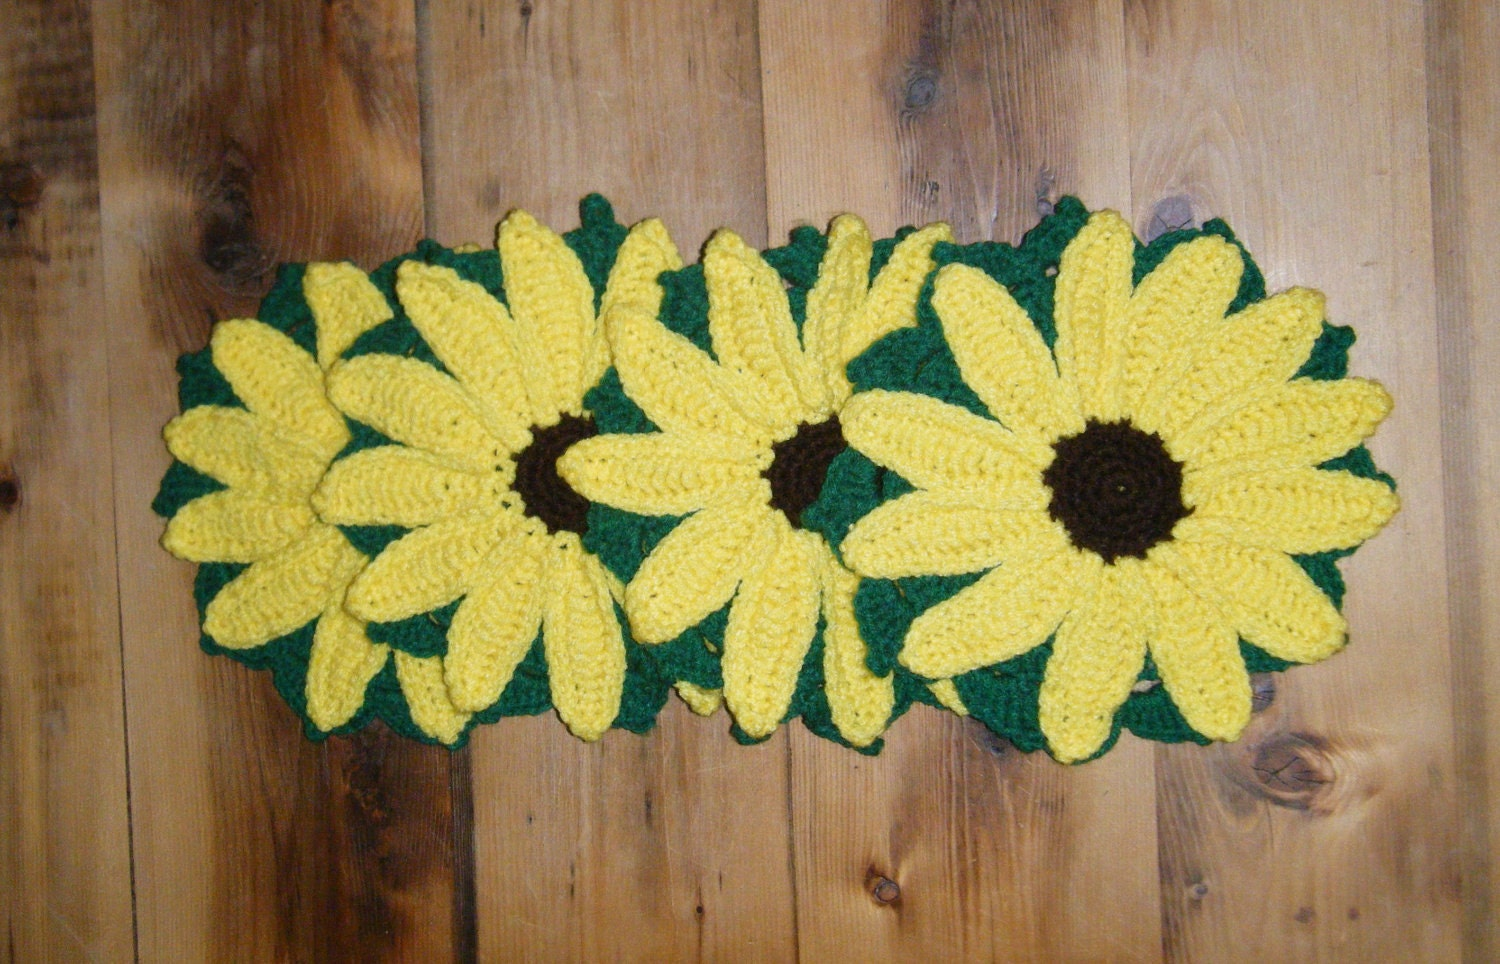 Handmade Crochet Sunflower Potholder Trivets - Set of 4